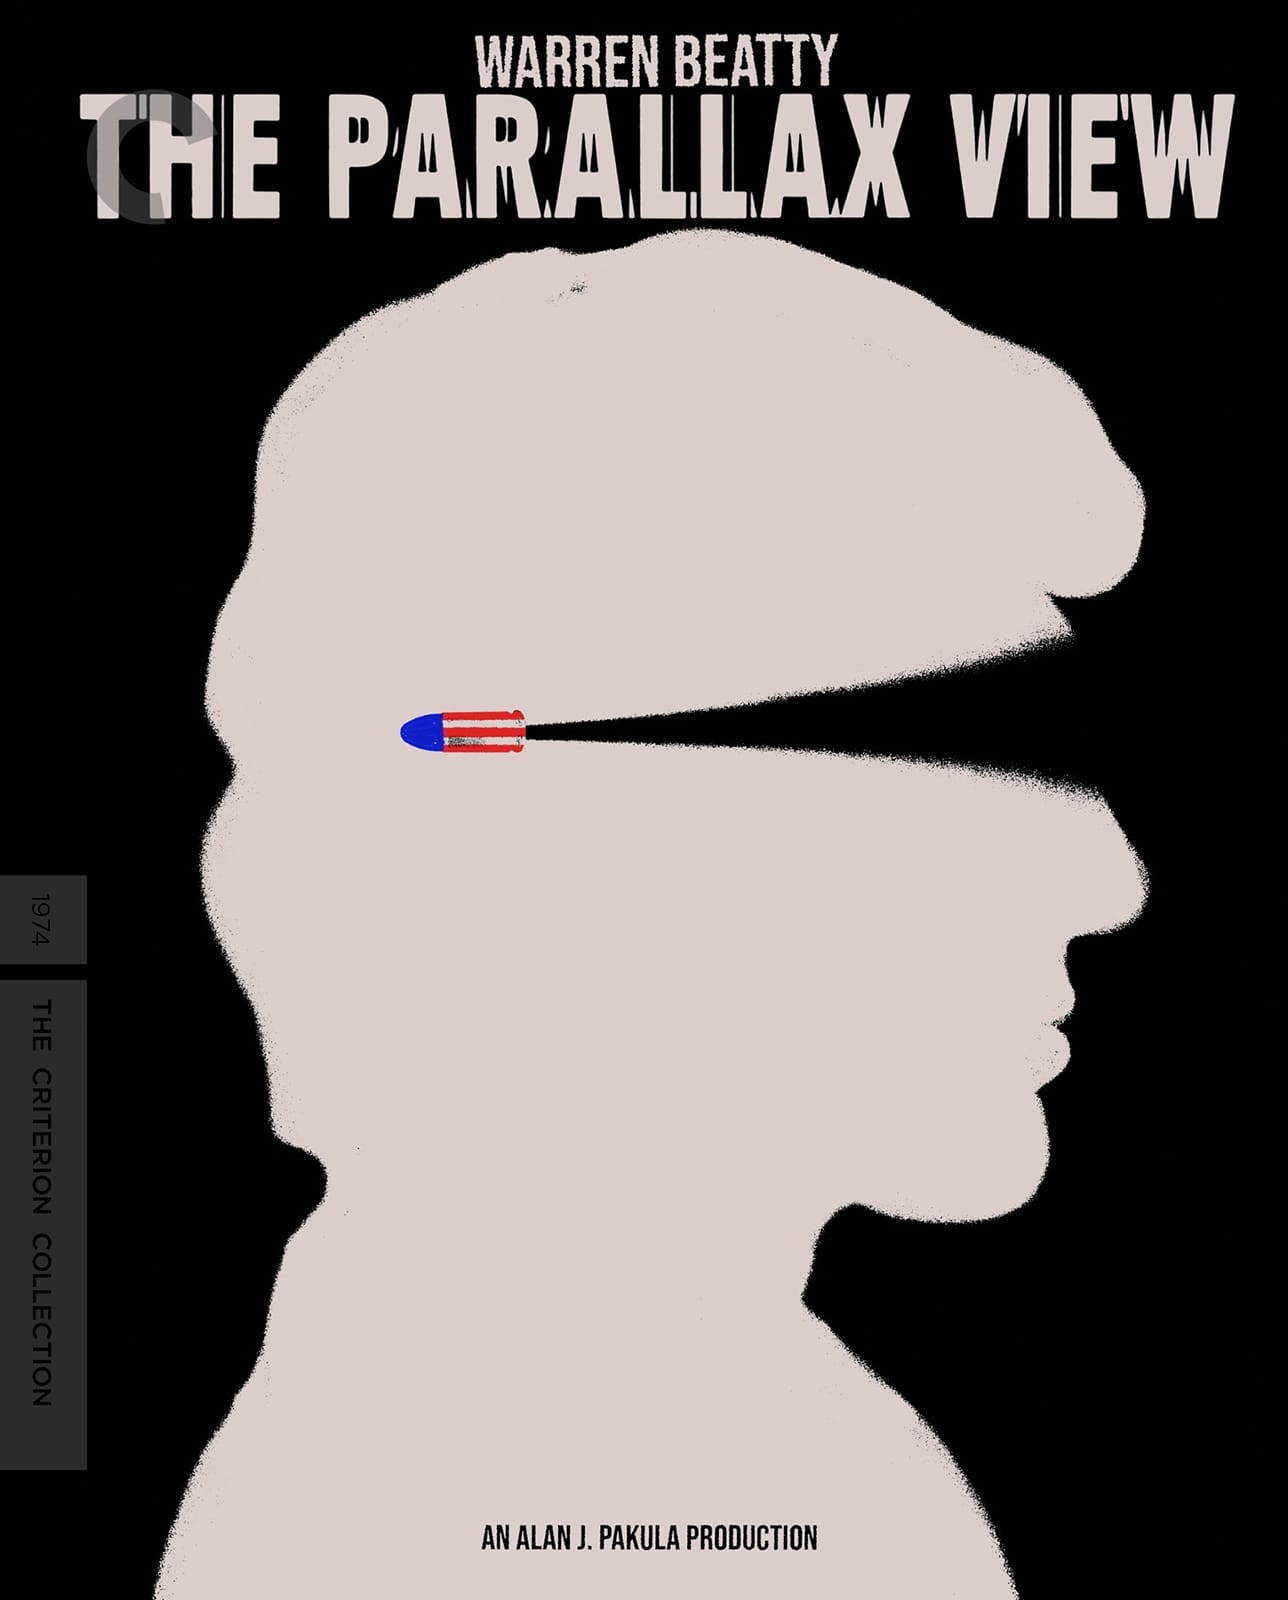 Top Film Picks on DVD/Blu-ray: A Paranoid '70s-Era Political Thriller & a Neo-Noir Crime Drama